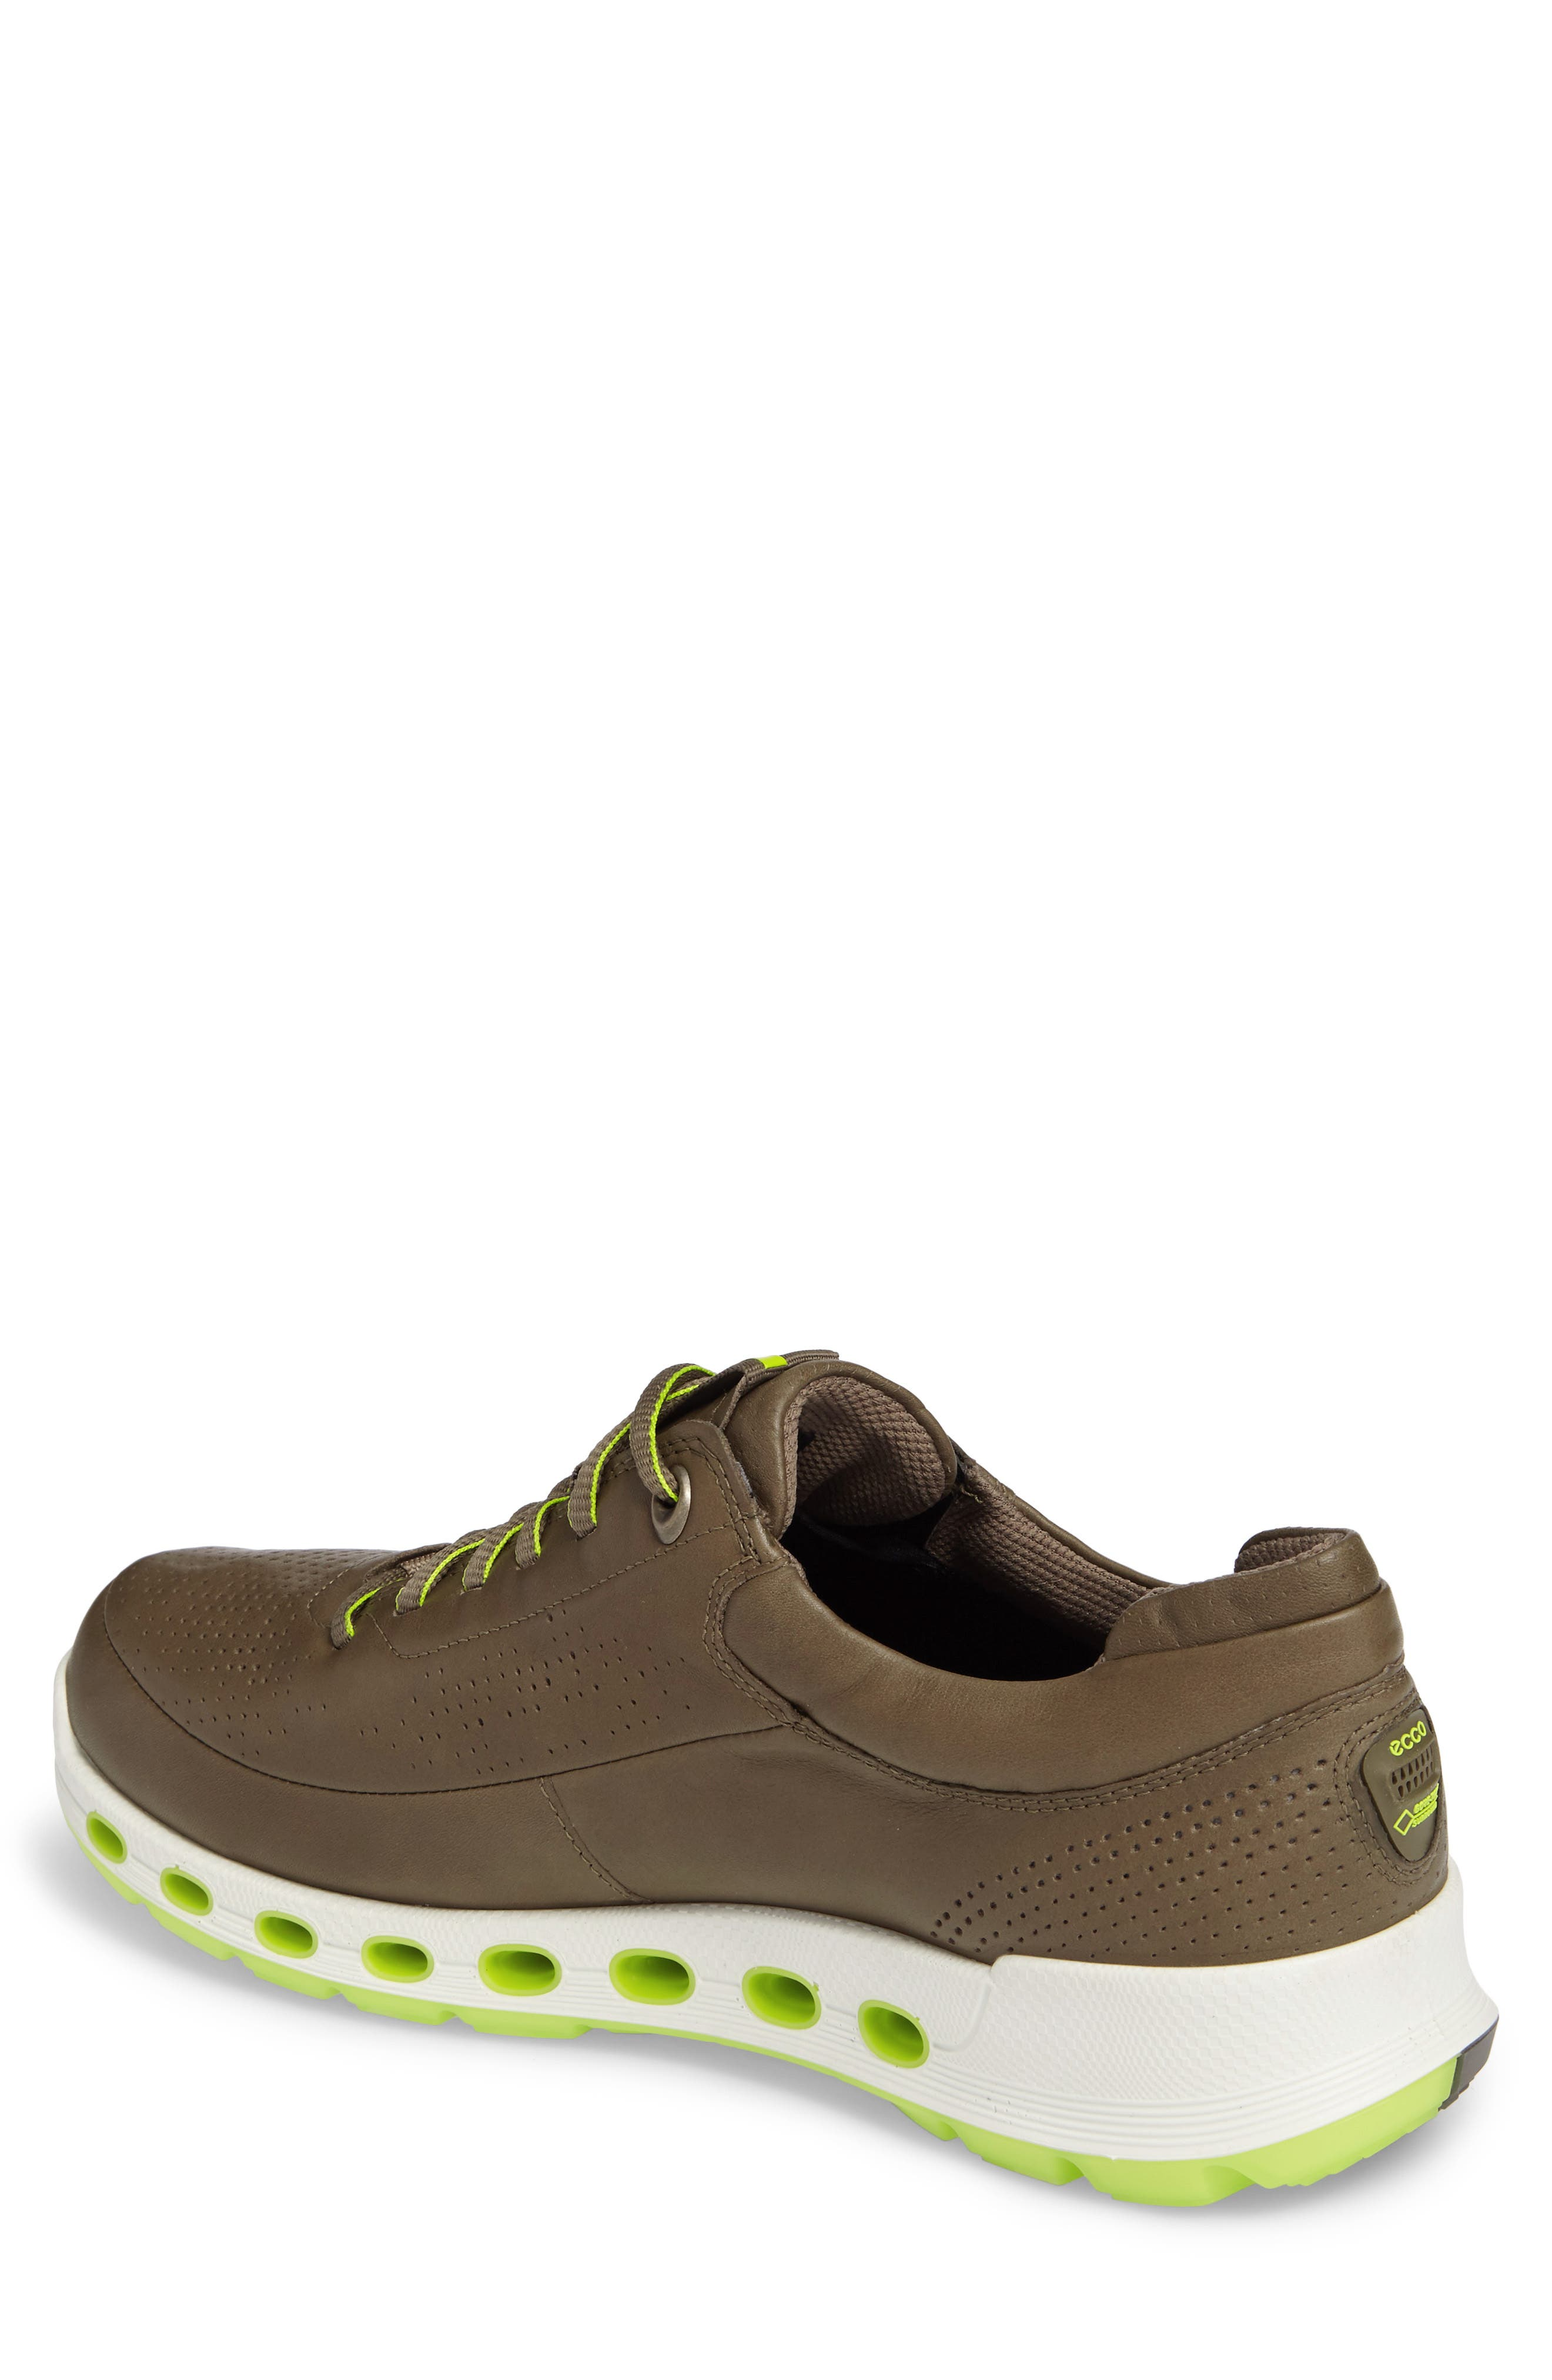 Cool 2.0 Leather GTX Sneaker,                             Alternate thumbnail 2, color,                             Tarmac Leather